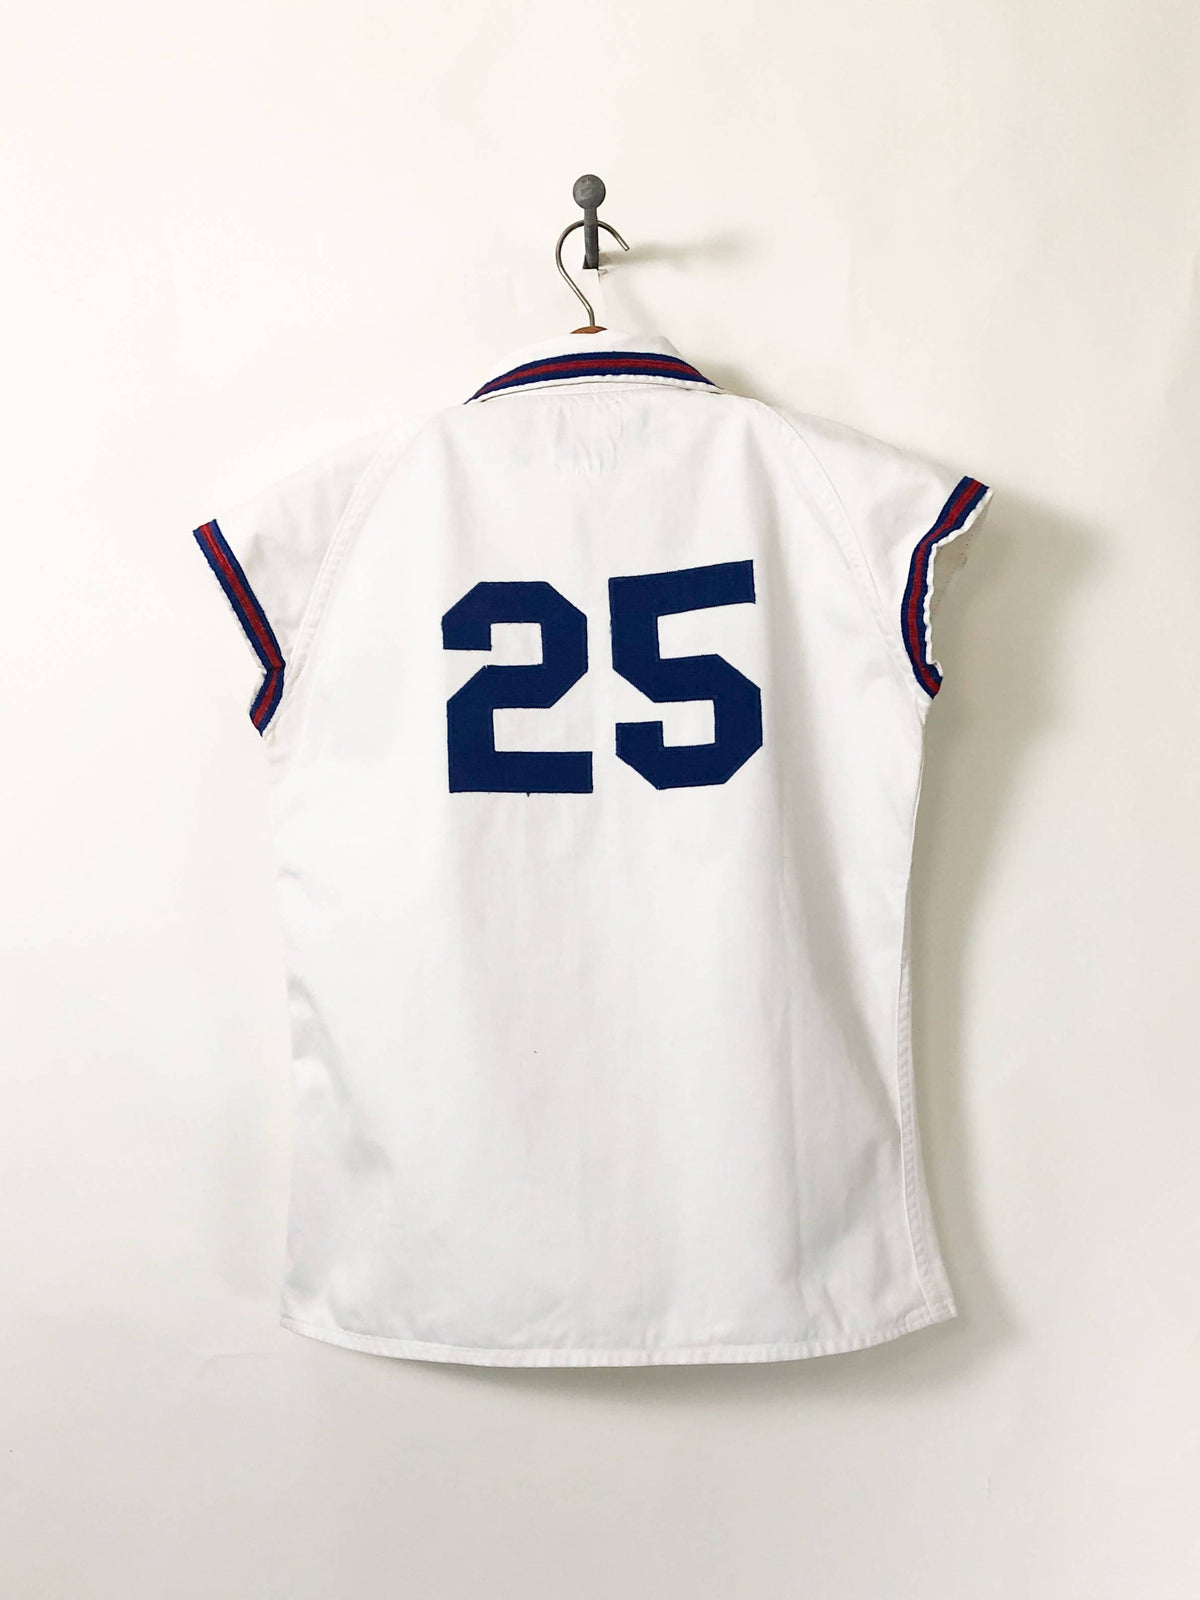 25 womens baseball shirt